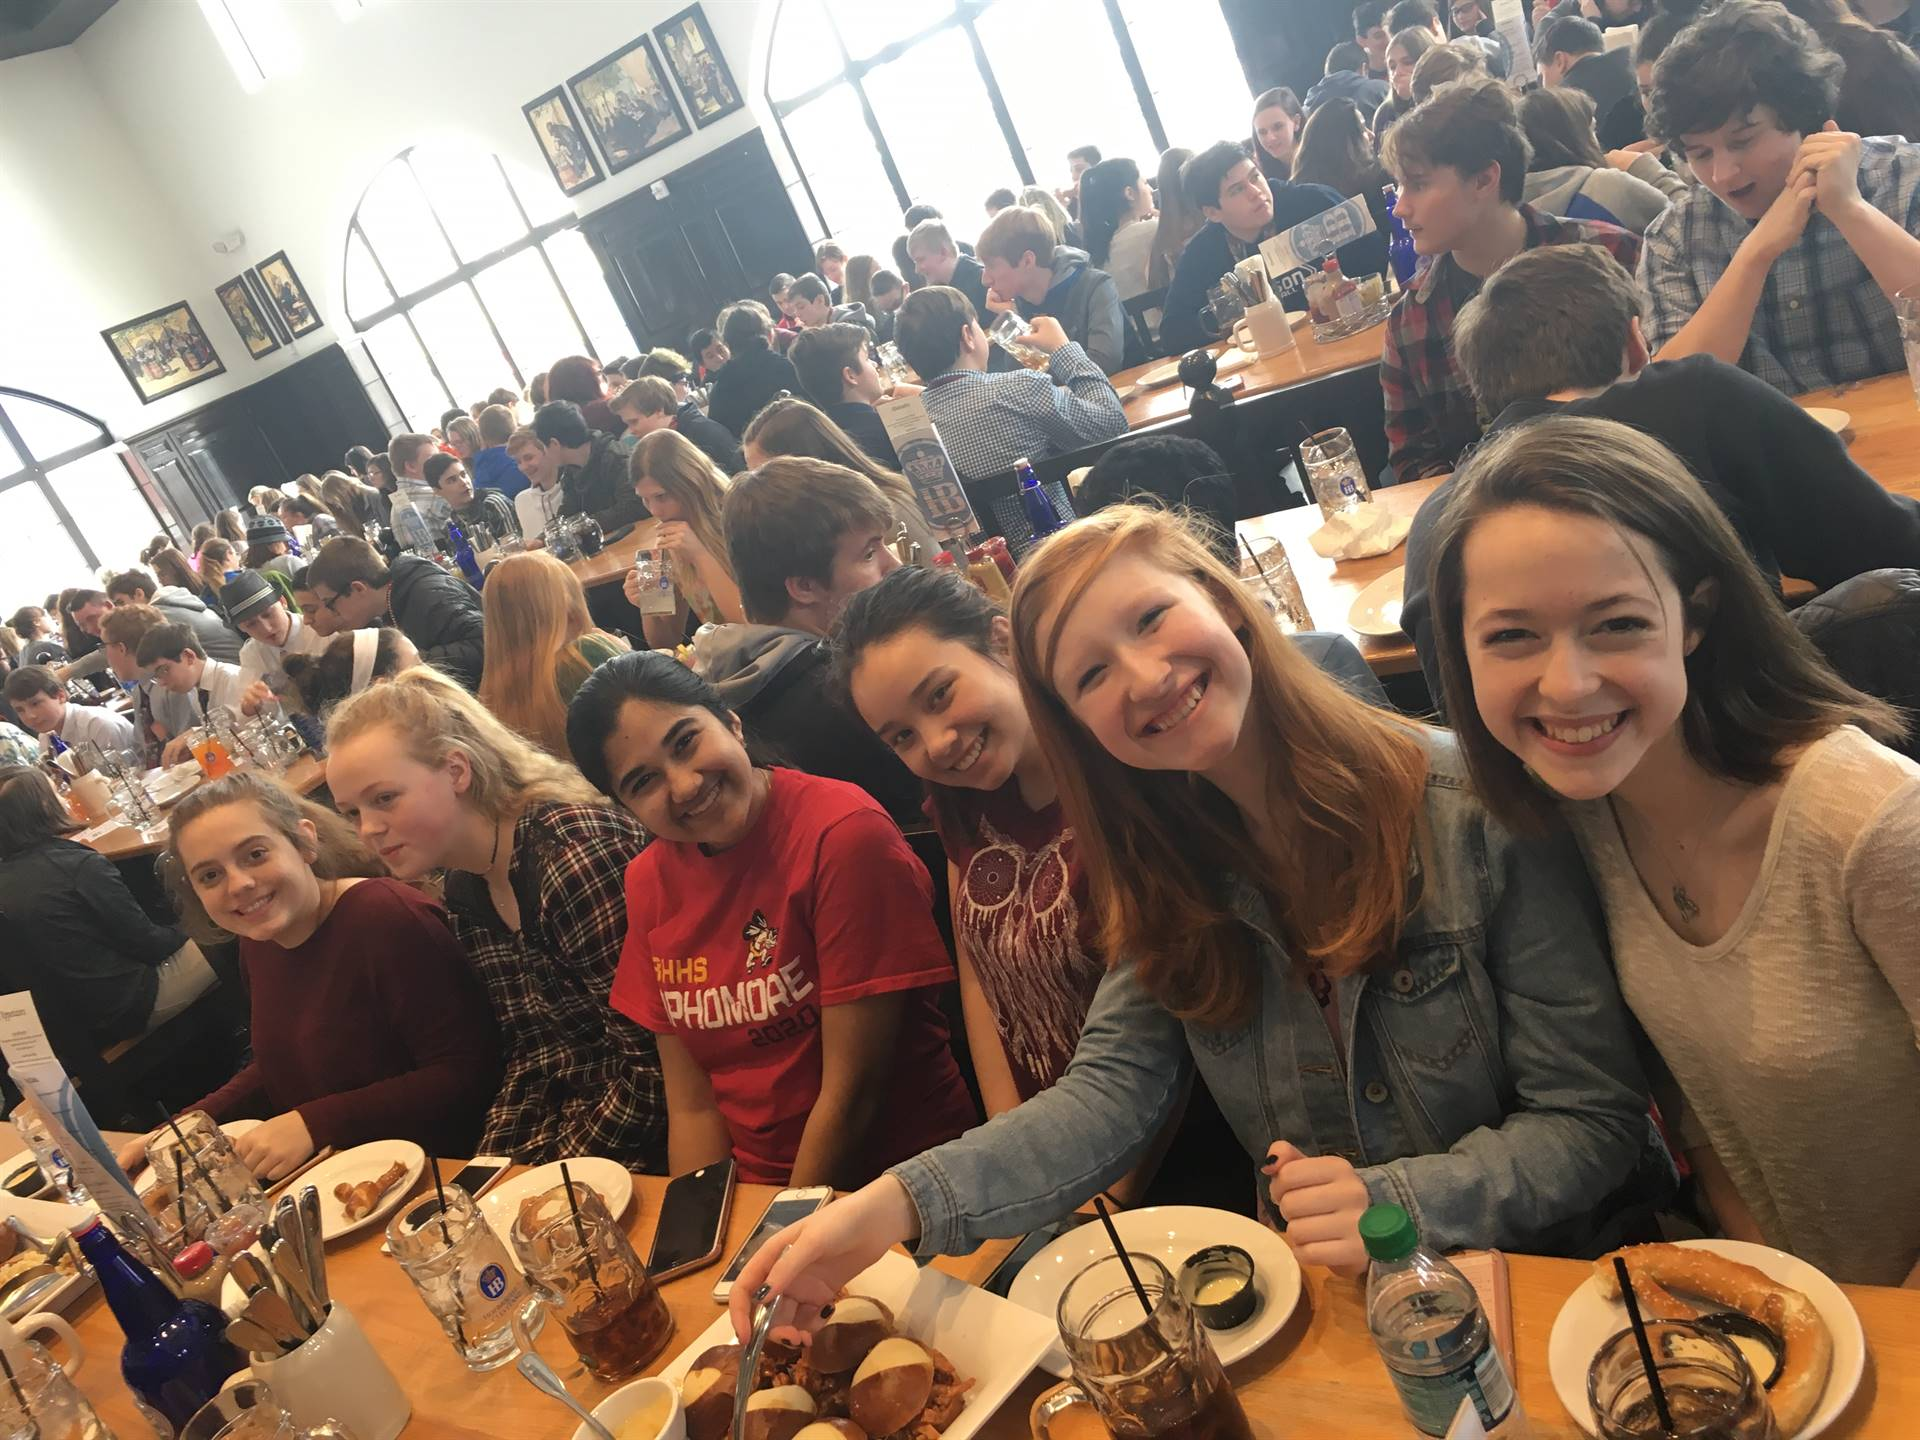 German Club members celebrating Carnival at Hofbrauhaus